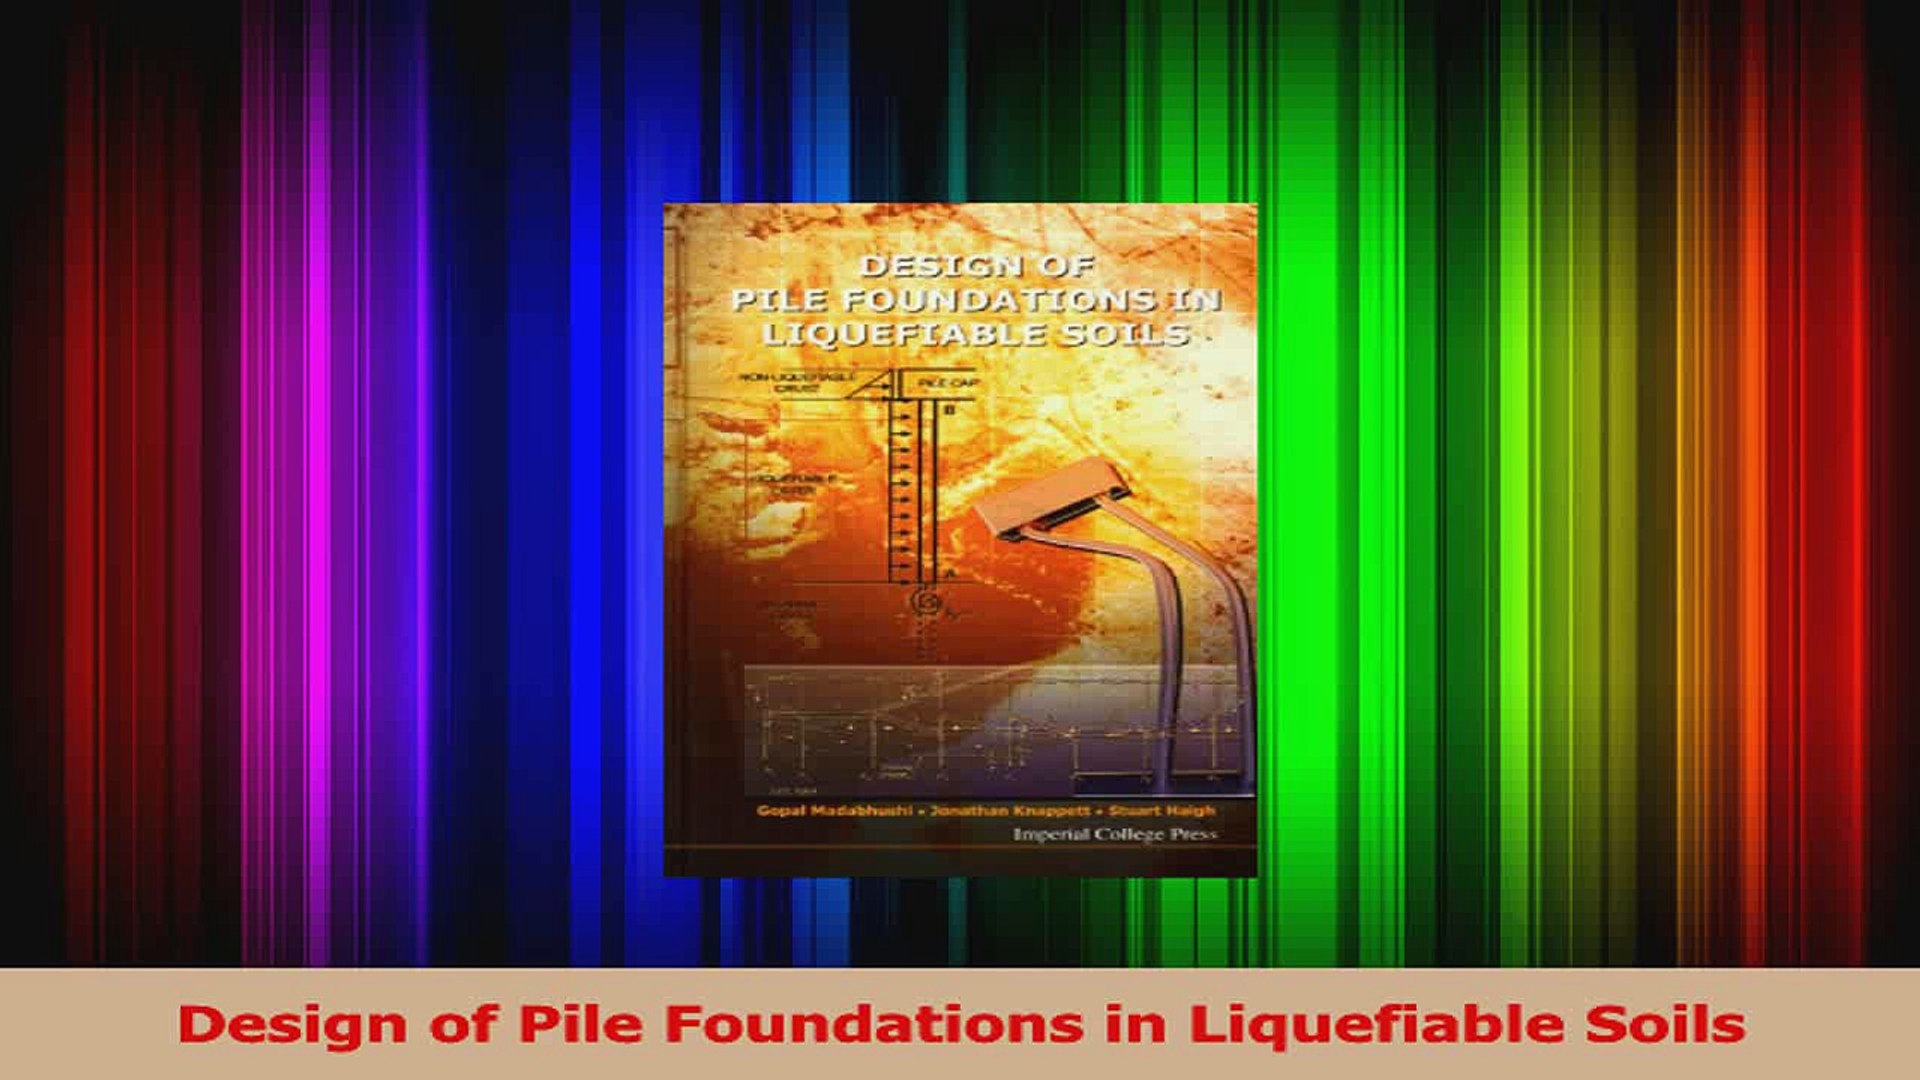 Design of pile foundations in liquefiable soils